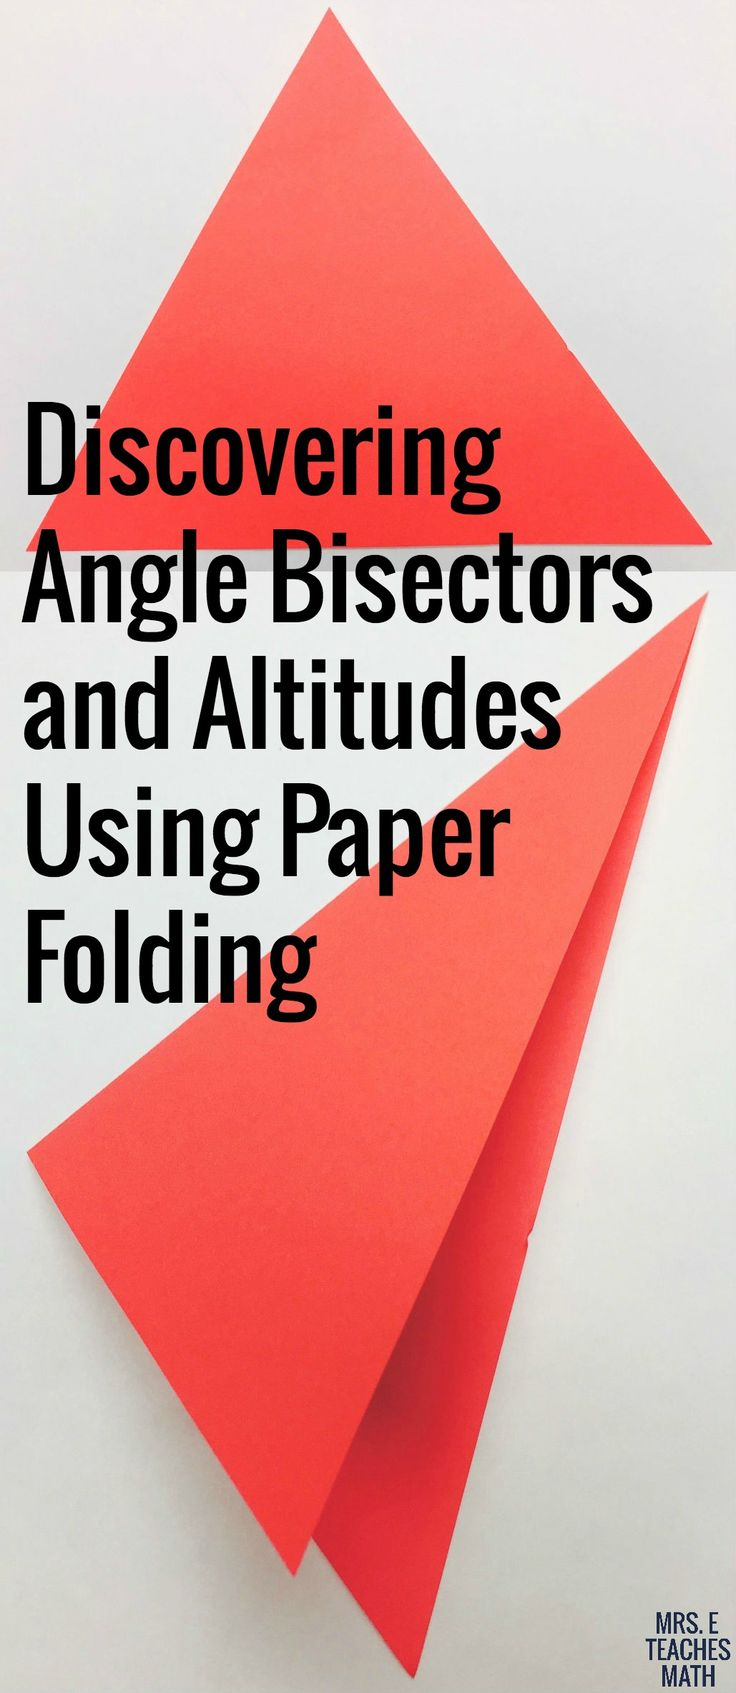 discovering altitudes and angle bisectors in triangles by paper folding - idea for high school geometry